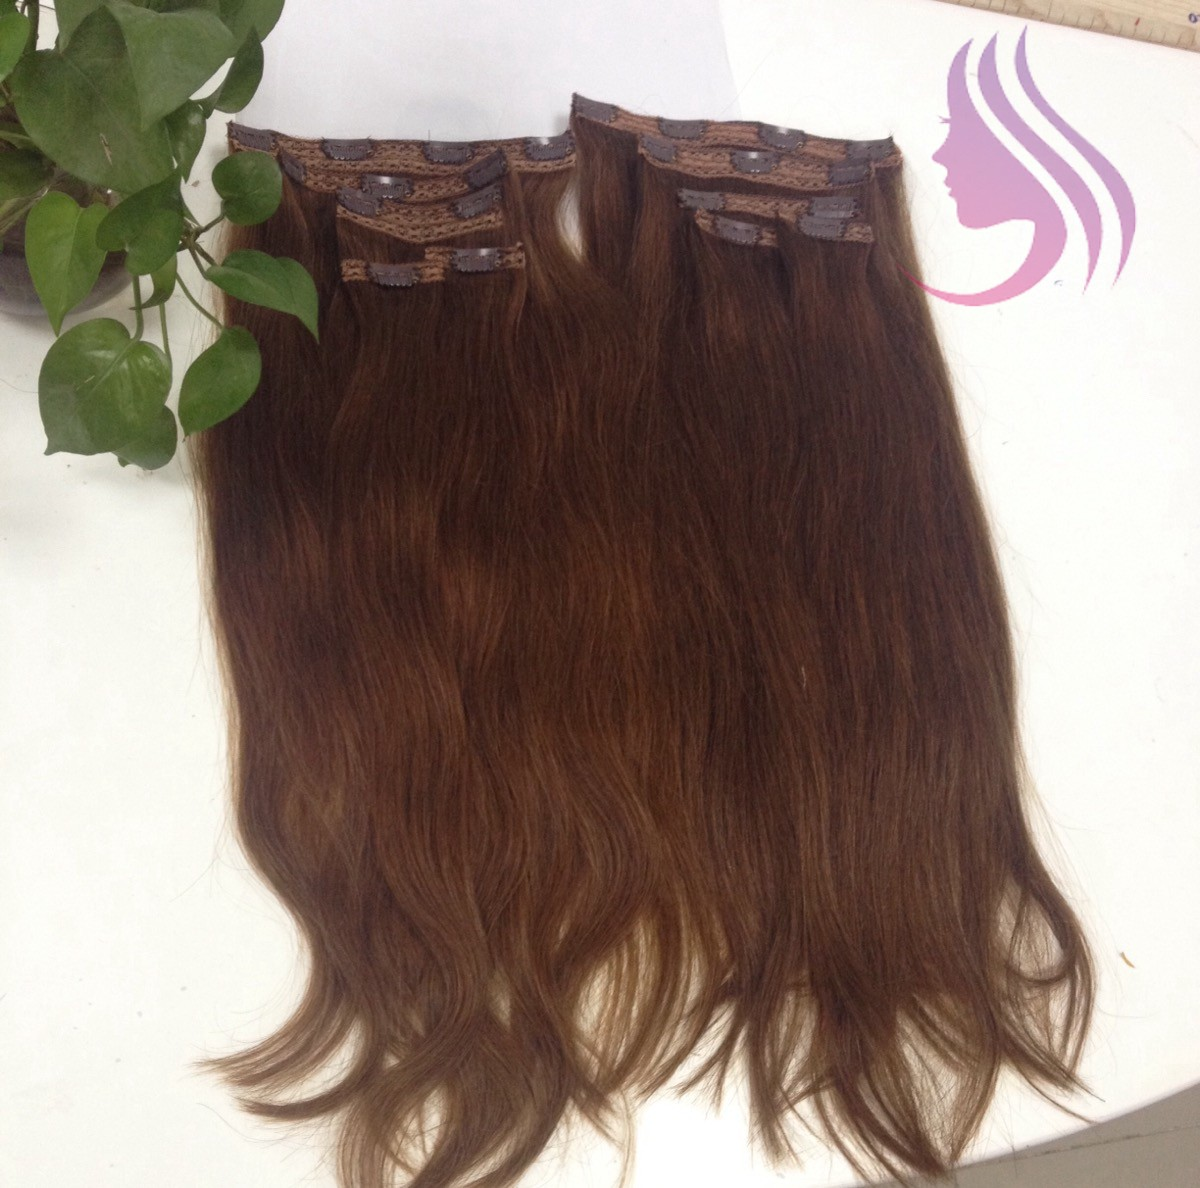 Not Tape In Hair Extension This One Is More Popular In 2018